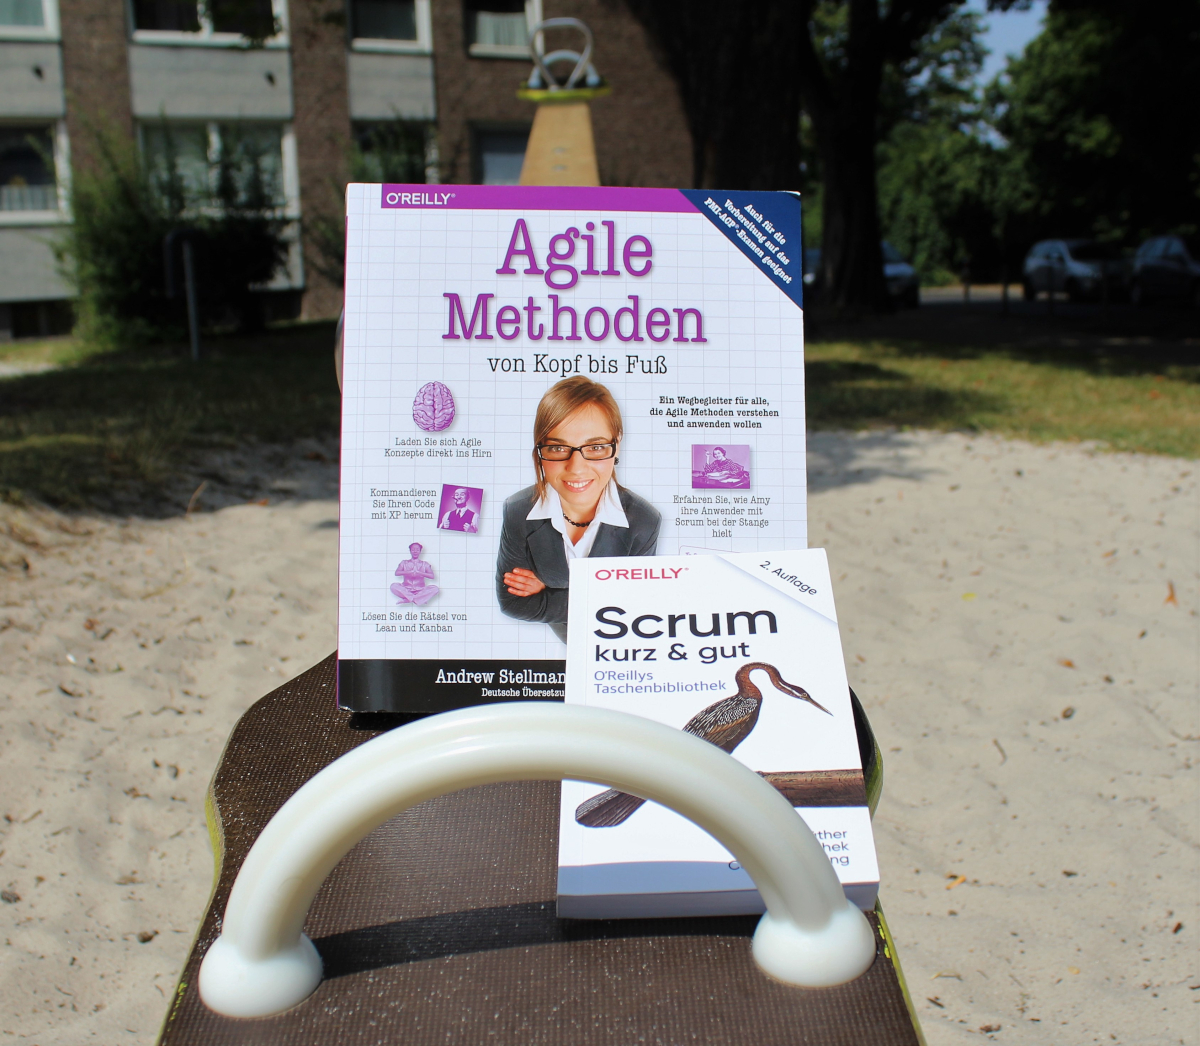 Agile Methoden Scrum